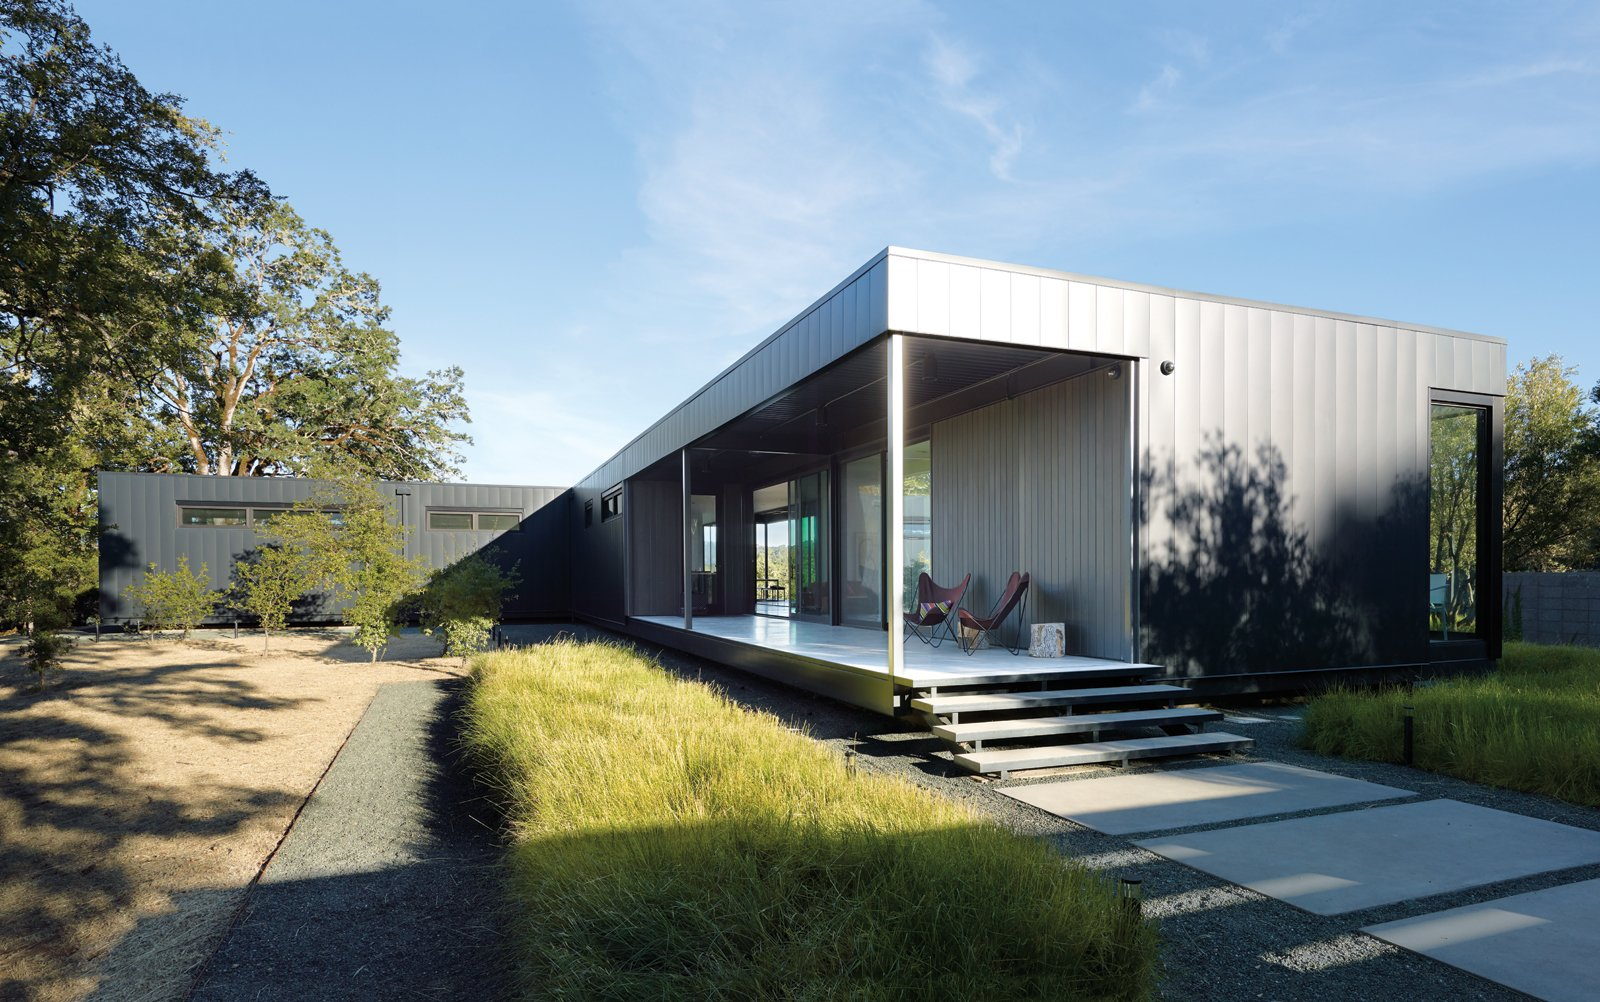 """Outdoor and Front Yard When Abbie and Bill Burton hired Marmol Radziner to design their prefab weekend home, their two requests were """"simple-simple, replaceable materials,"""" says Abbie—such as concrete floors (poured offsite in Marmol Radziner's factory) and metal panel siding—and """"the ability to be indoors or outdoors with ease."""" Deep overhangs provide shade and protection from rain, so the Burtons can leave their doors open year-round and hang out on their 70-foot-long deck even in inclement weather. They visit the house once a month, usually for a week at a time, with Vinnie and Stella, their rescue Bernese Mountain dogs. Their two adult children occasionally join them. The couple hopes to one day retire here.  Exteriors by Matthew Keeshin from A Simple Plan"""